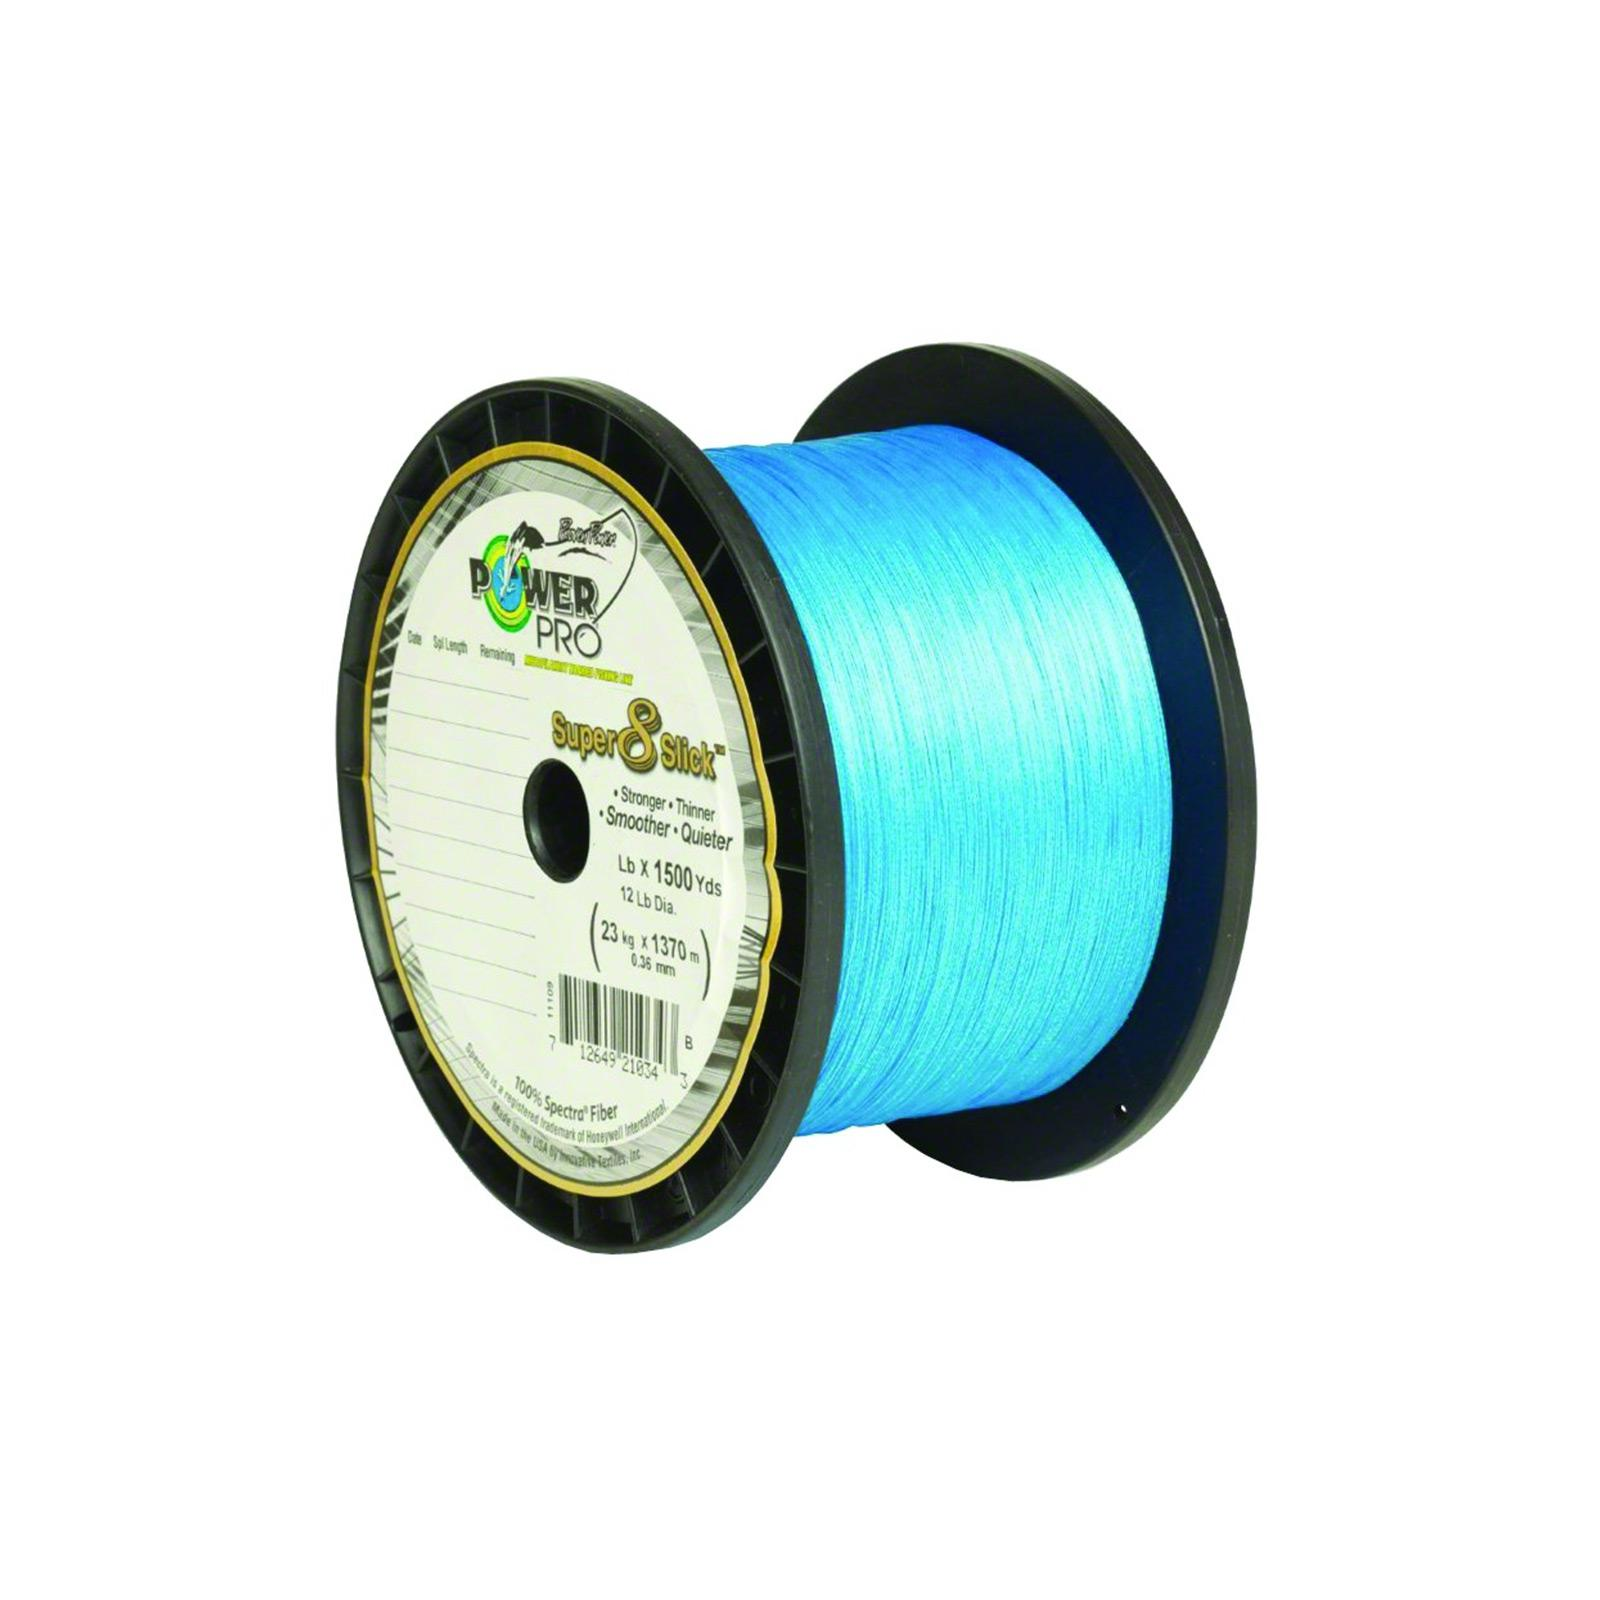 Click here to buy Power Pro Super Slick 8 Braid Fishing Line 10lb 1500yd Hi-Vis YELLOW SS-10-1500y by Power Pro.